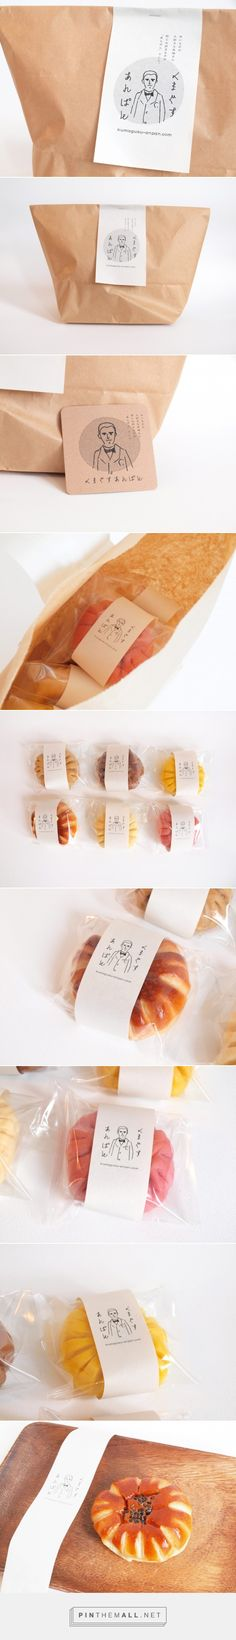 Package design #food